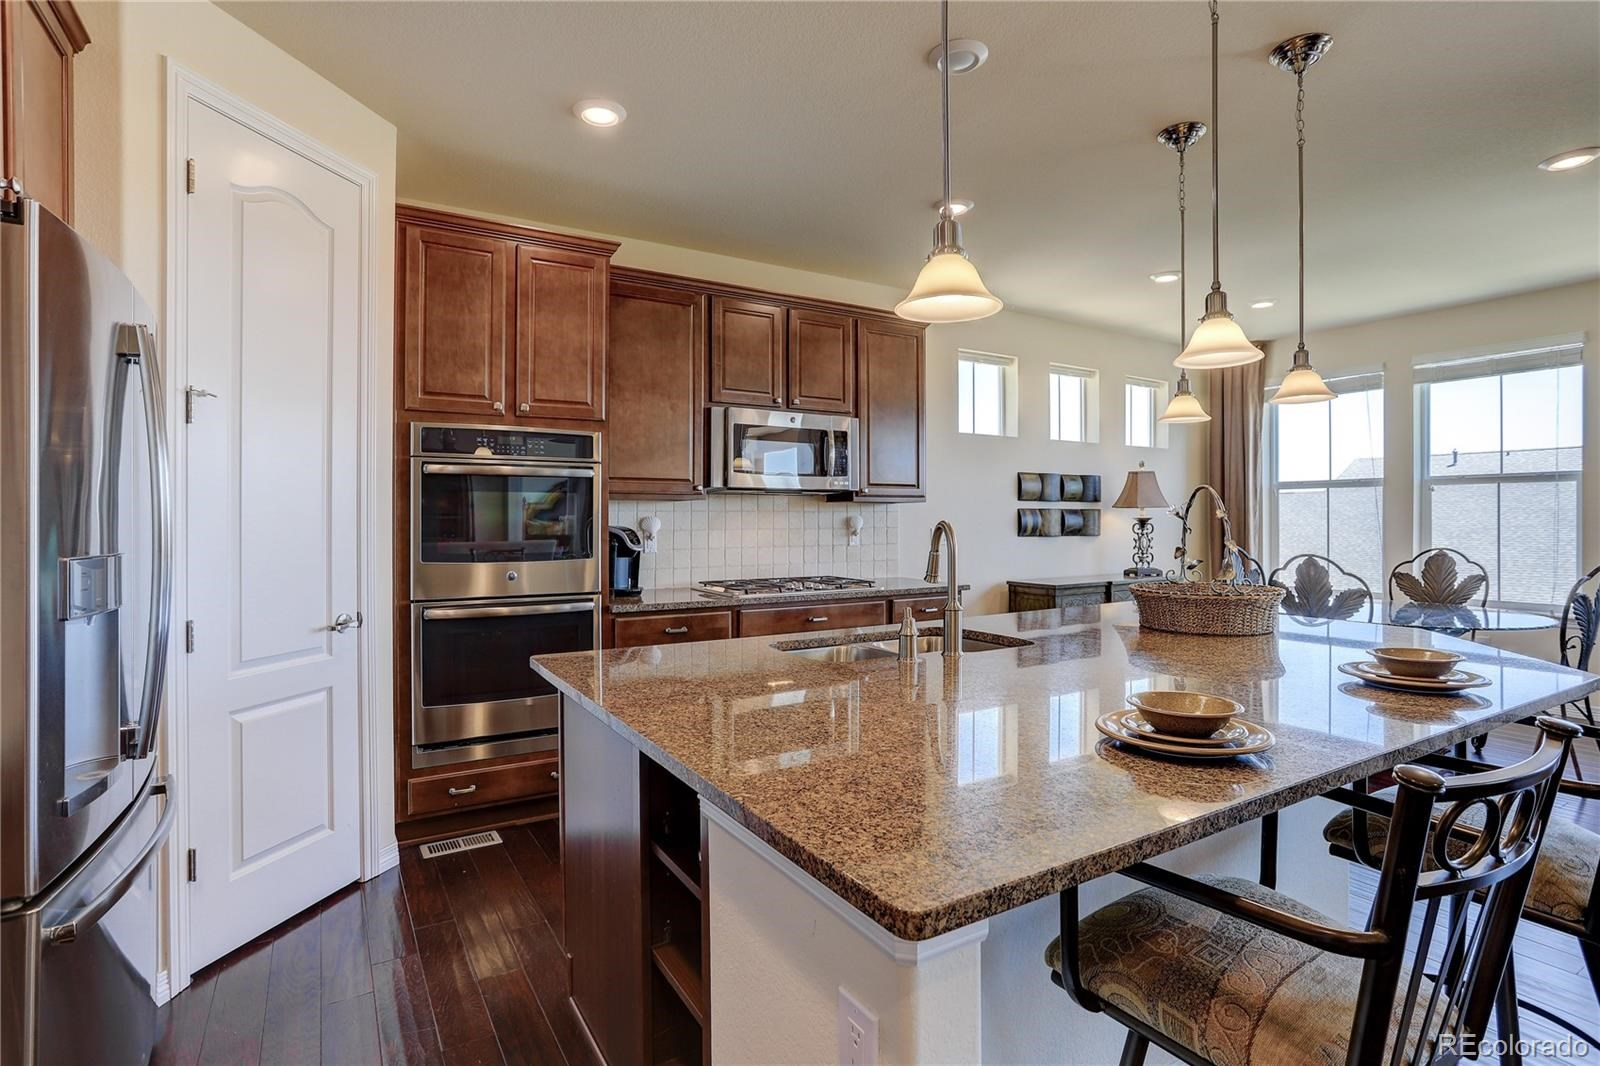 MLS# 8545425 - 11 - 7598 S Country Club Parkway, Aurora, CO 80016